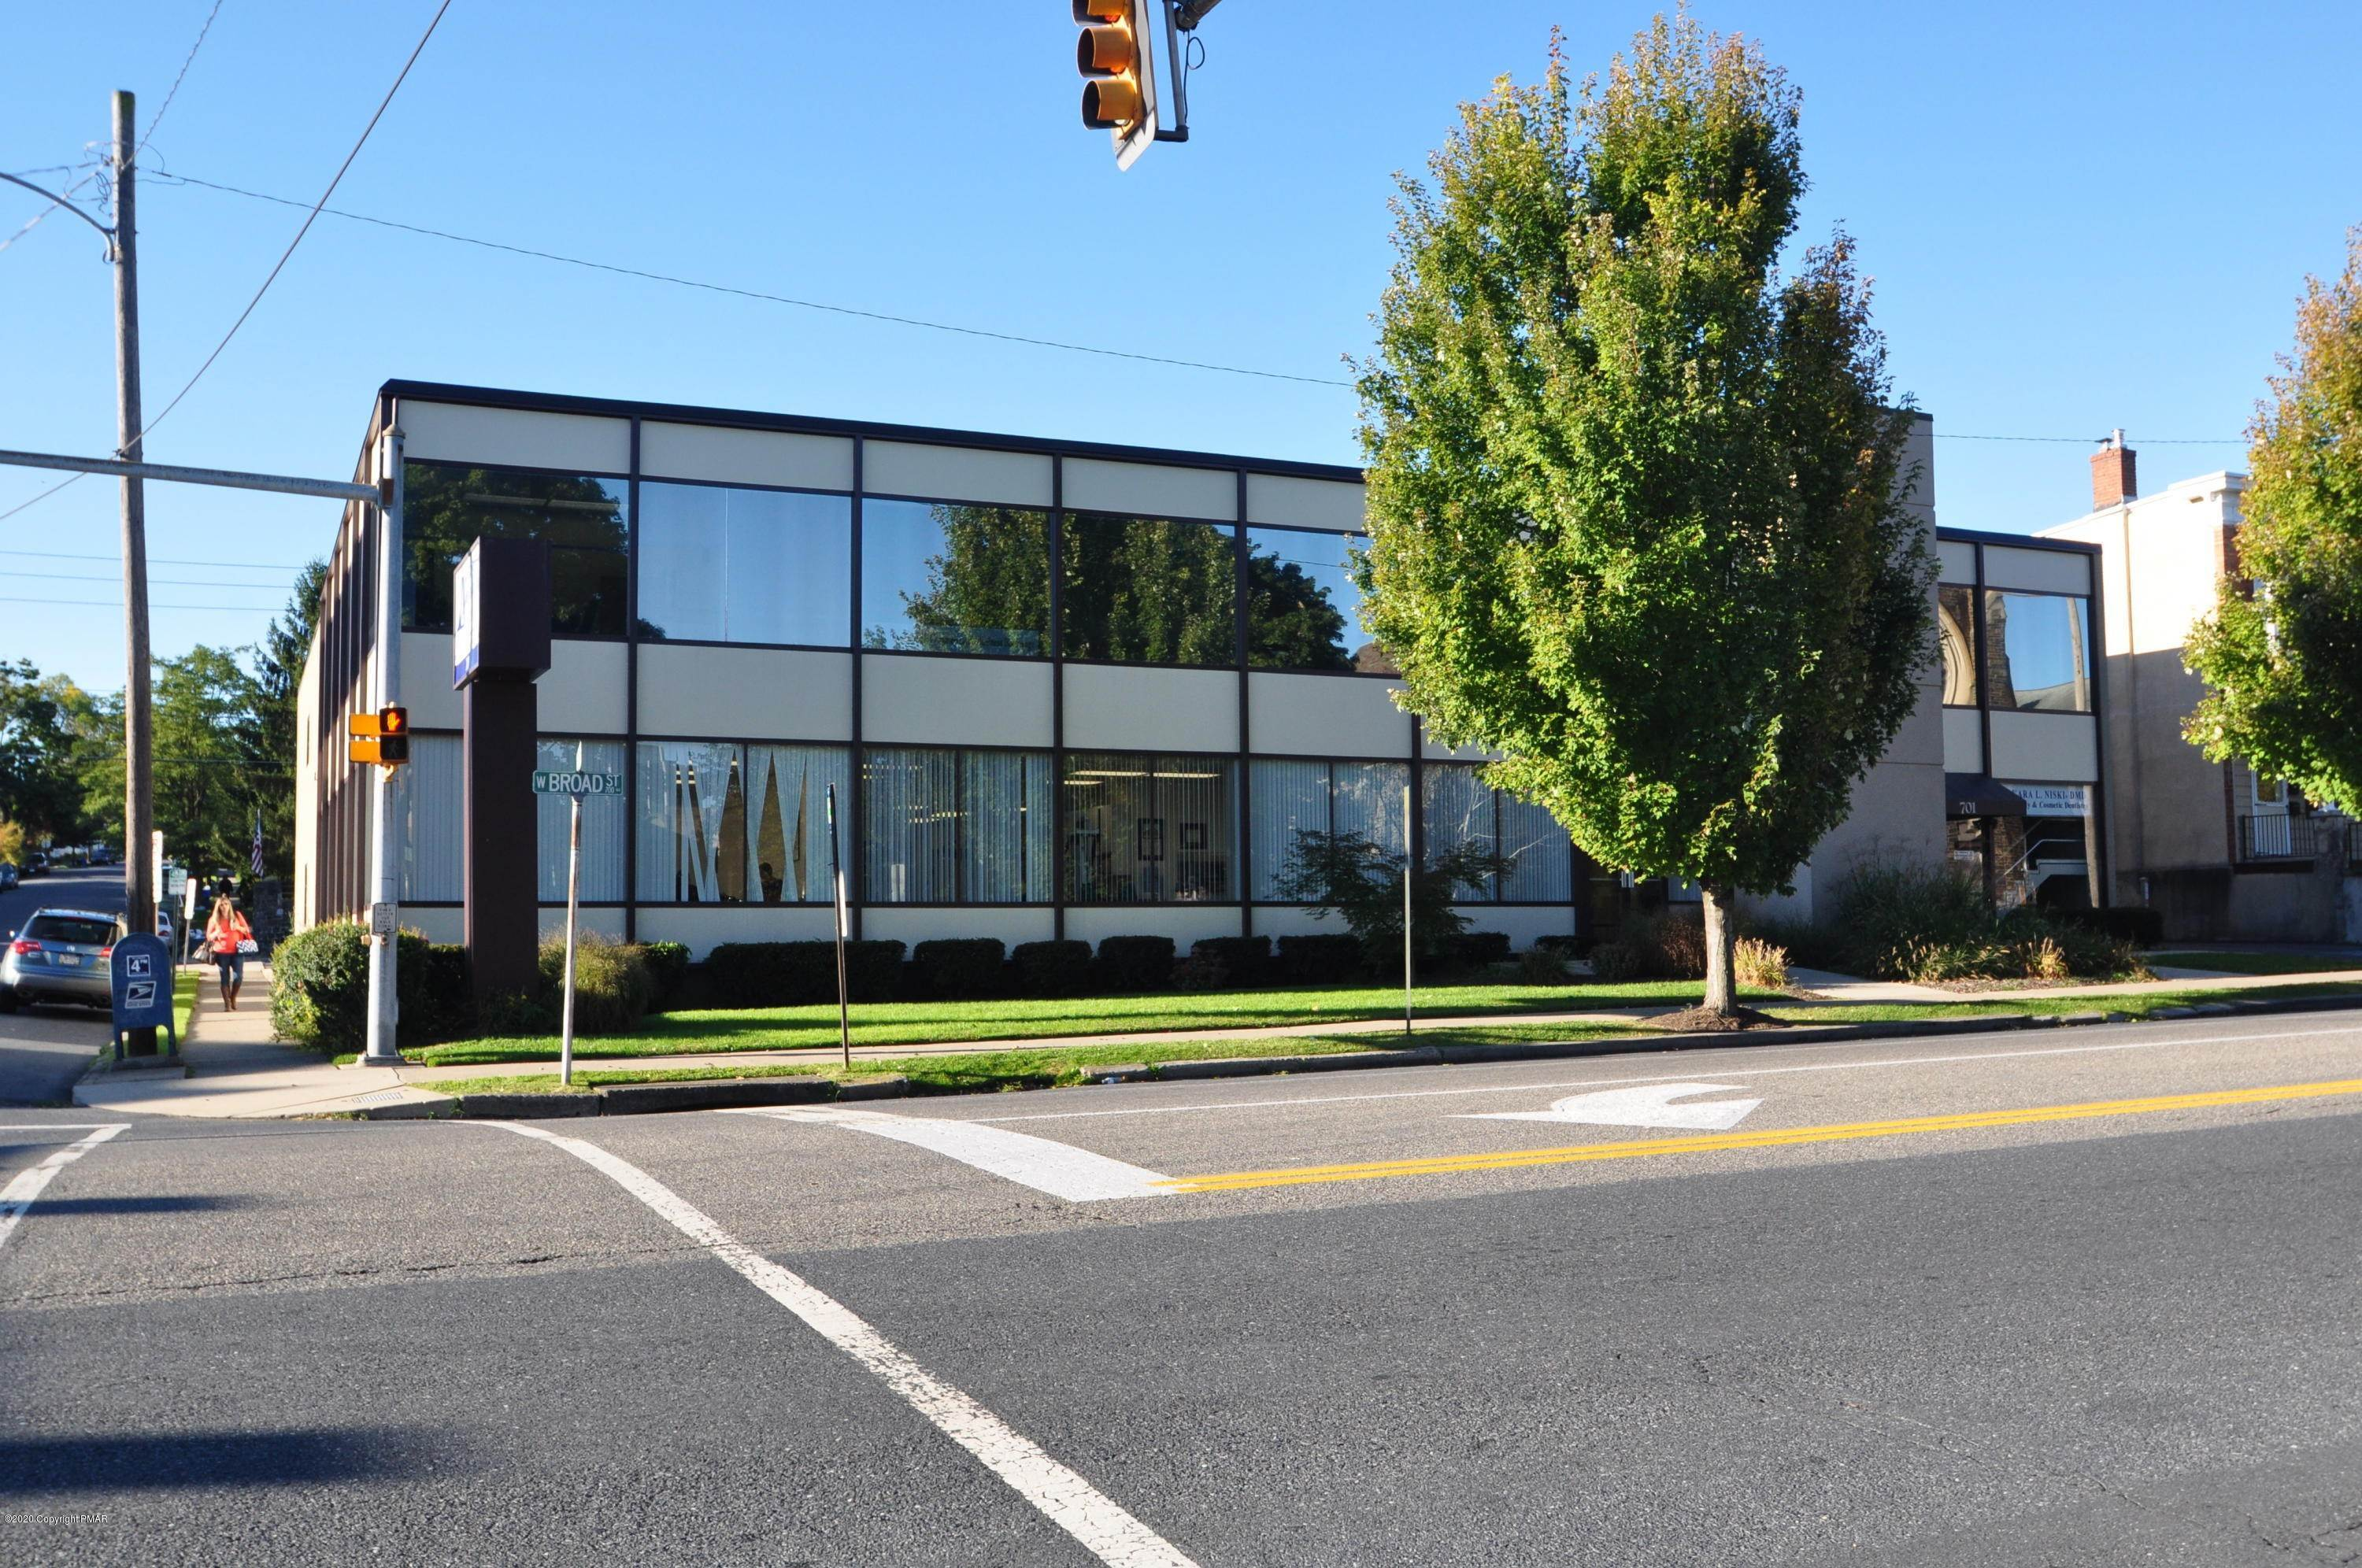 Commercial for Sale at 701 W Broad St Suite 206 Bethlehem, Pennsylvania 18018 United States